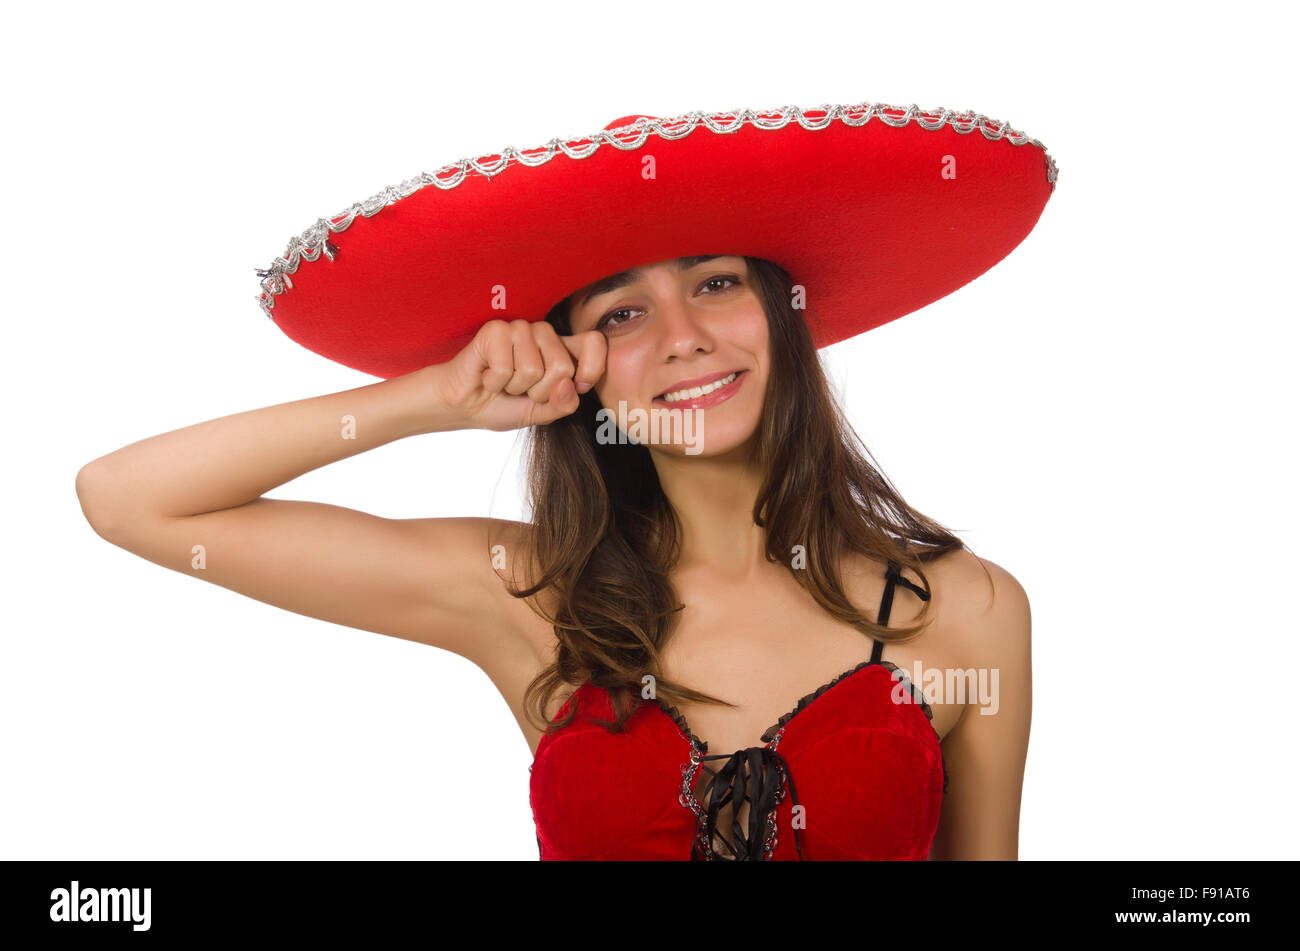 Woman wearing red sombrero isolated on white - Stock Image